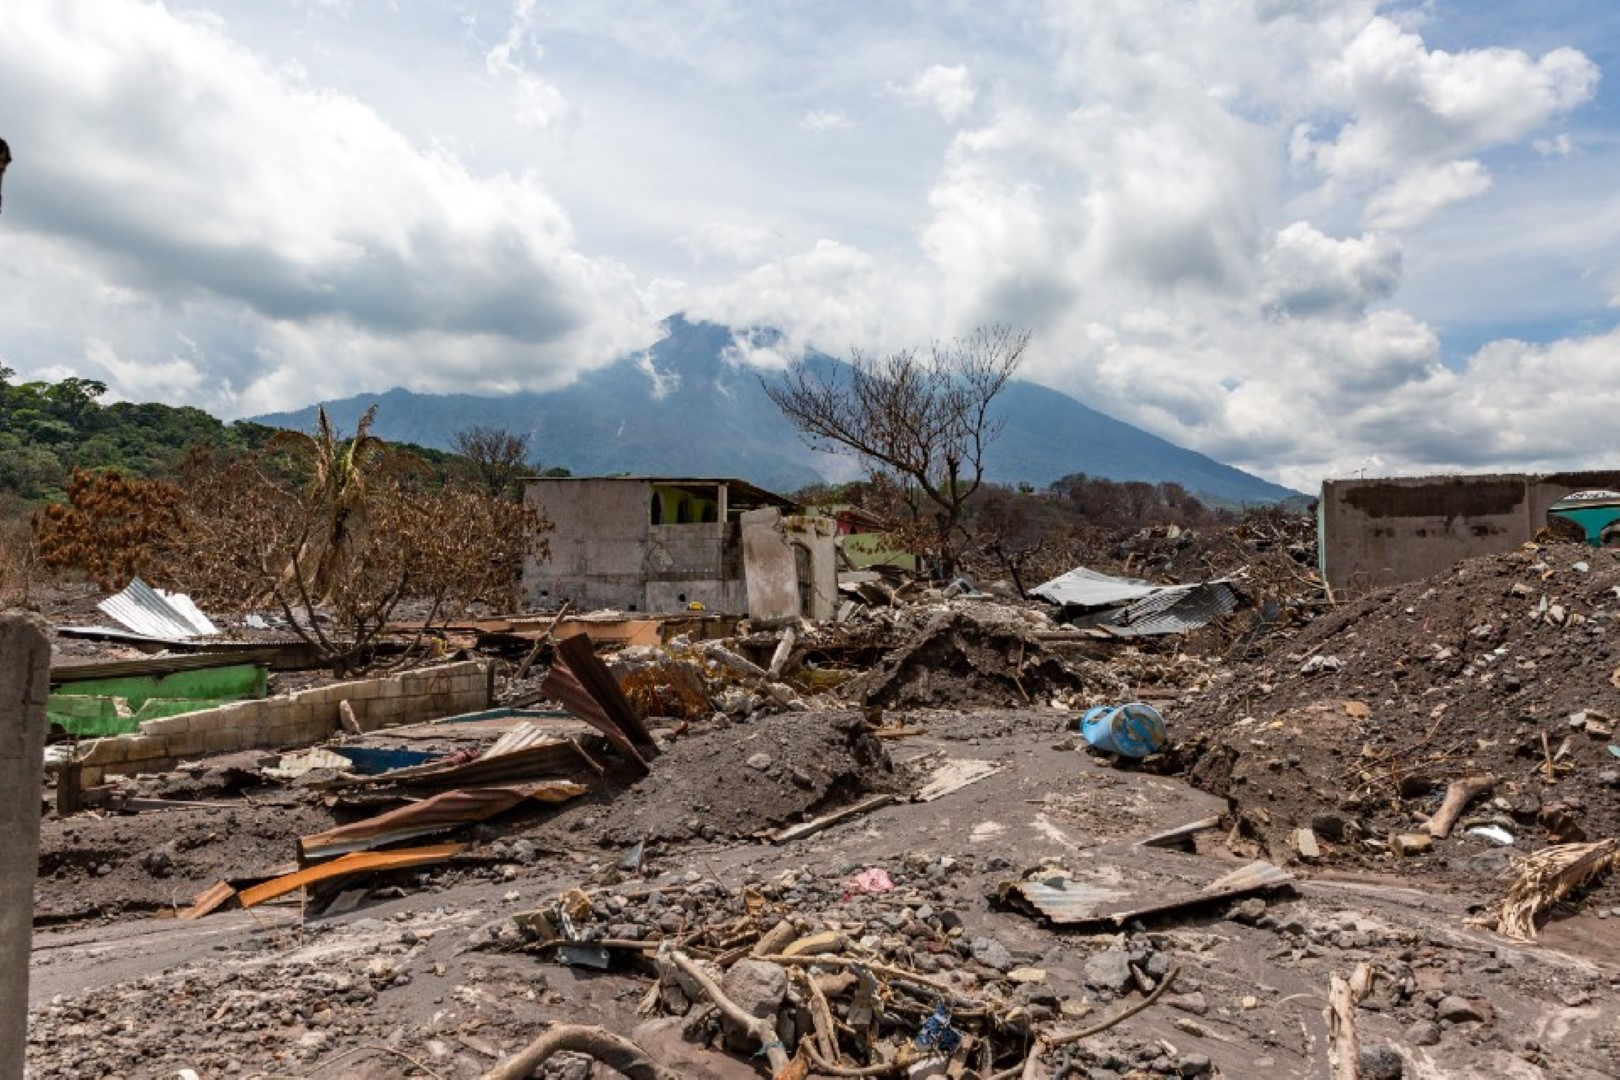 We hate the destructive and deadly pyroclastic flows from volcanoes. The gases and ash from Fuego, in Guatemala, killed more than 100 people and displaced thousands in June 2018. Photo by William Vazquez.